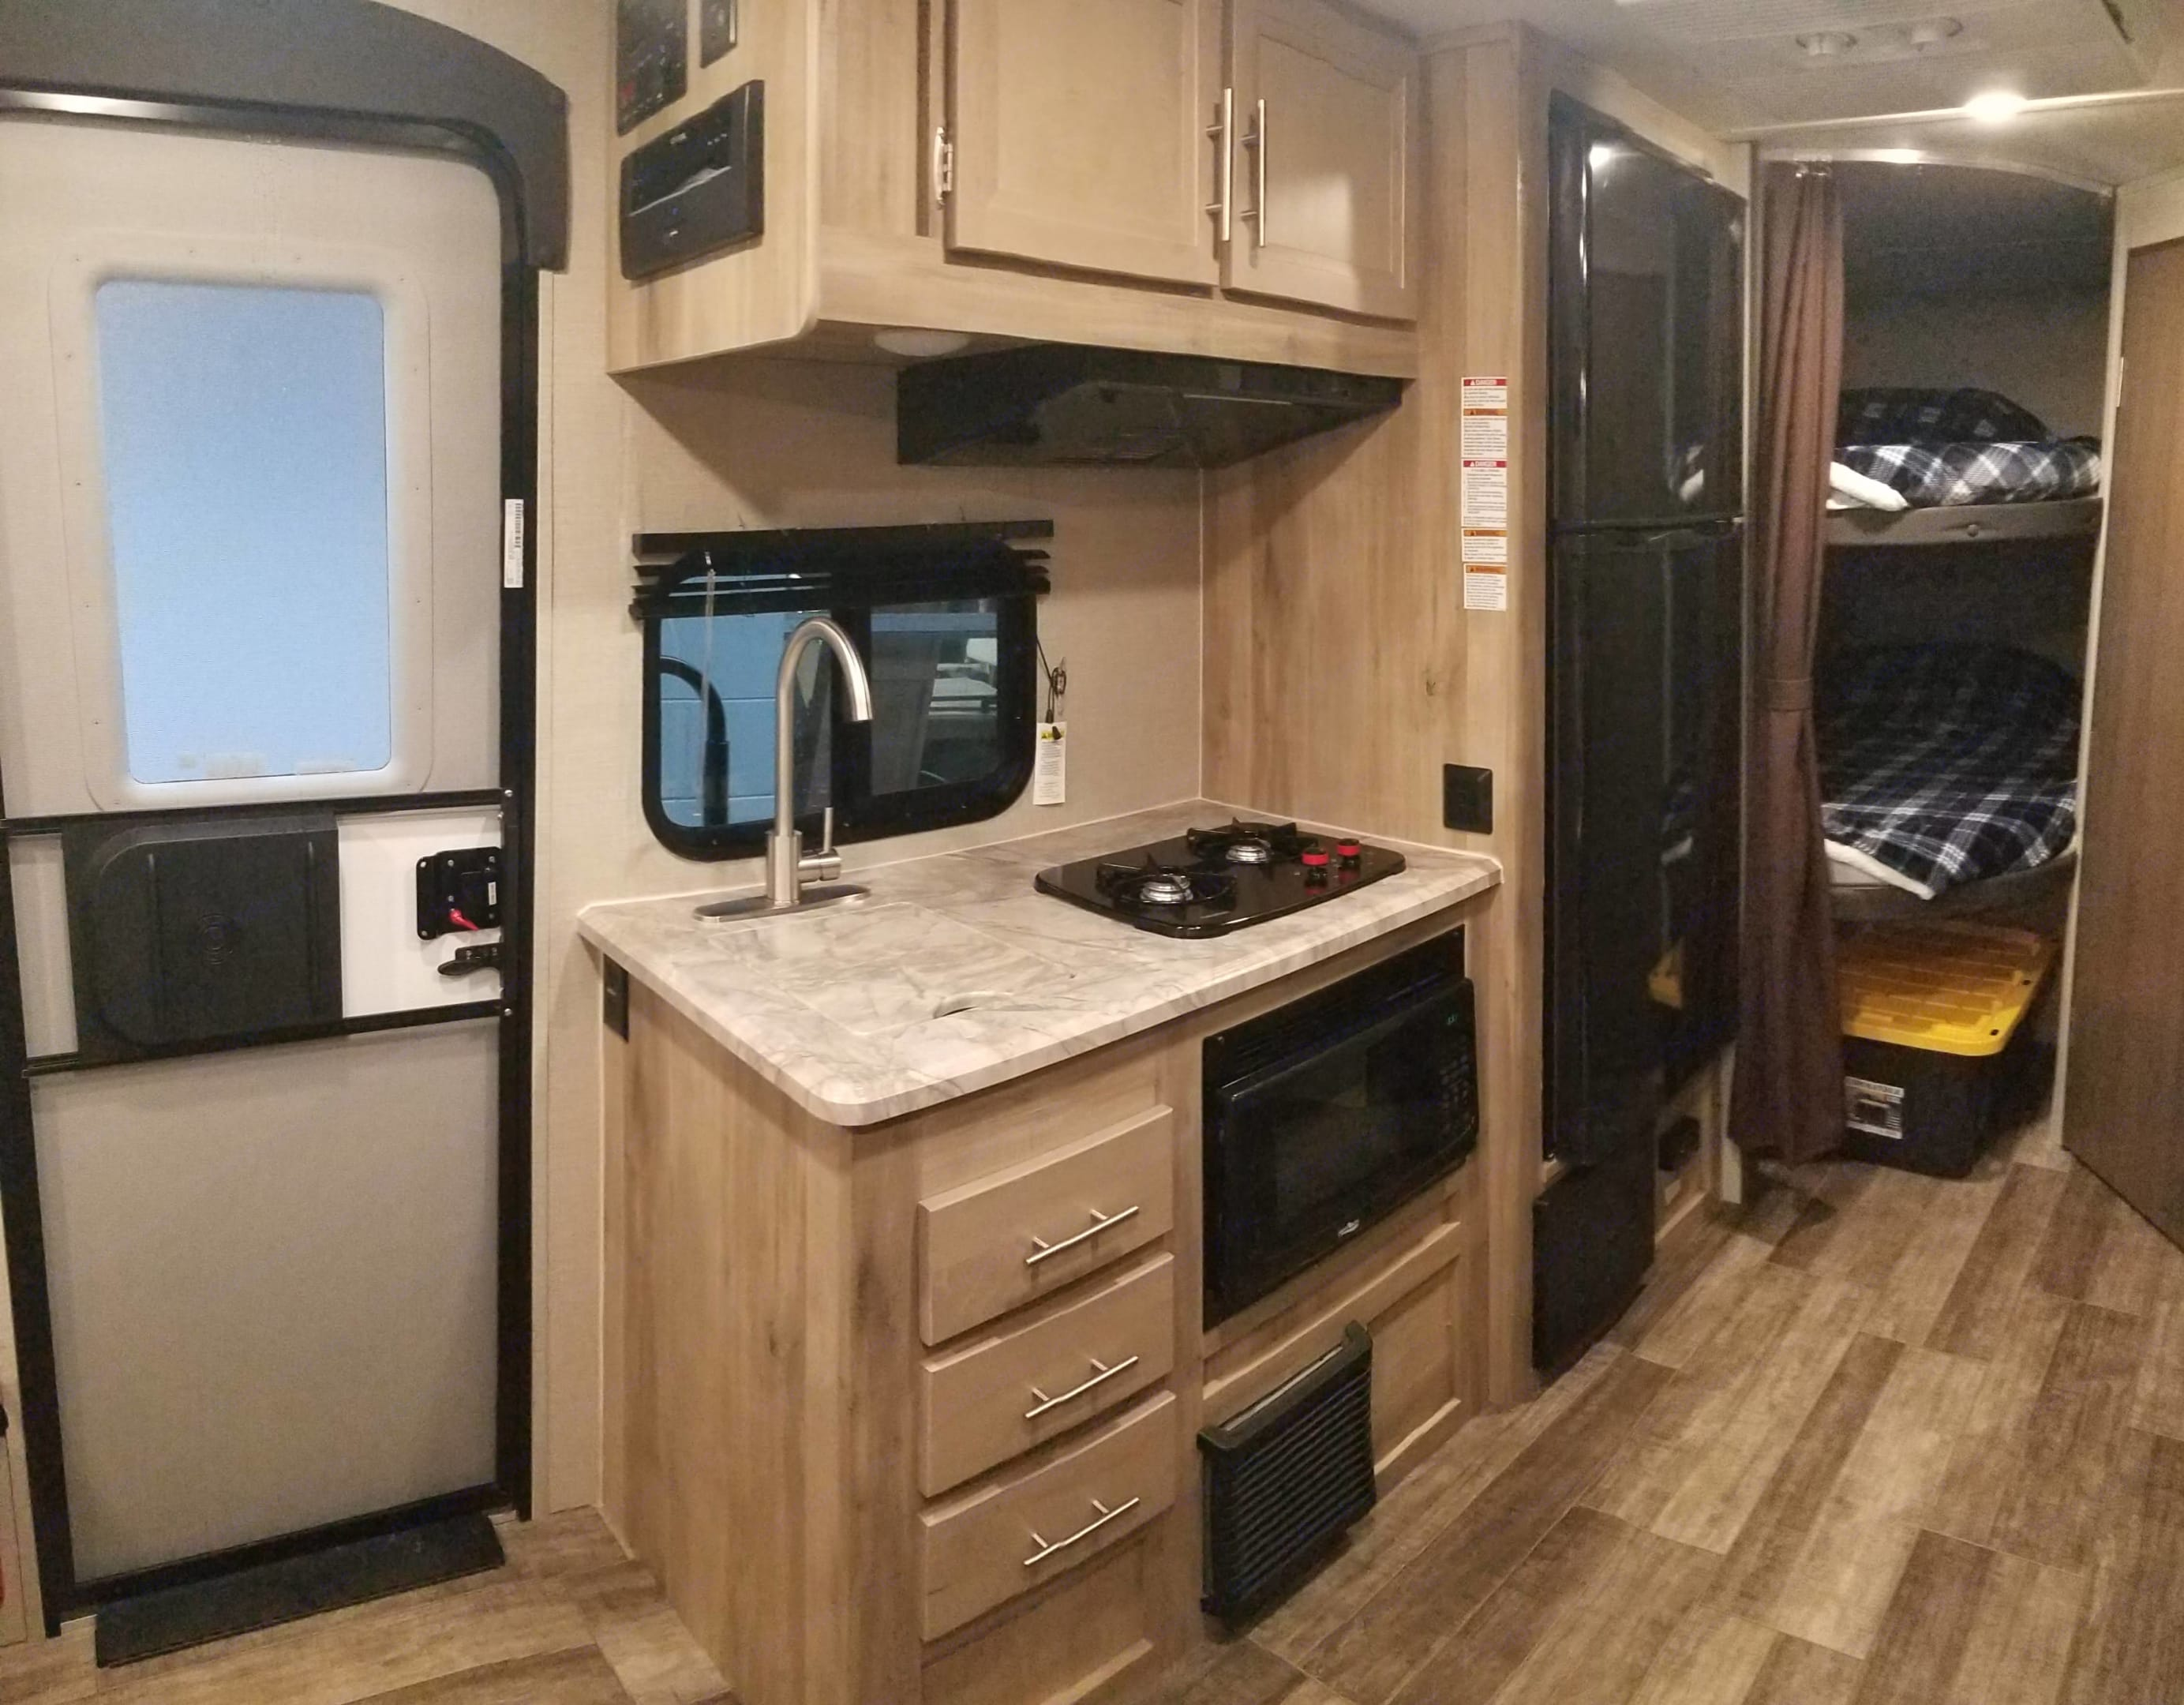 Kitchen with sink, microwave, 2 burner stove top and large fridge with freezer. Forest River Aurora 18BHS 2021